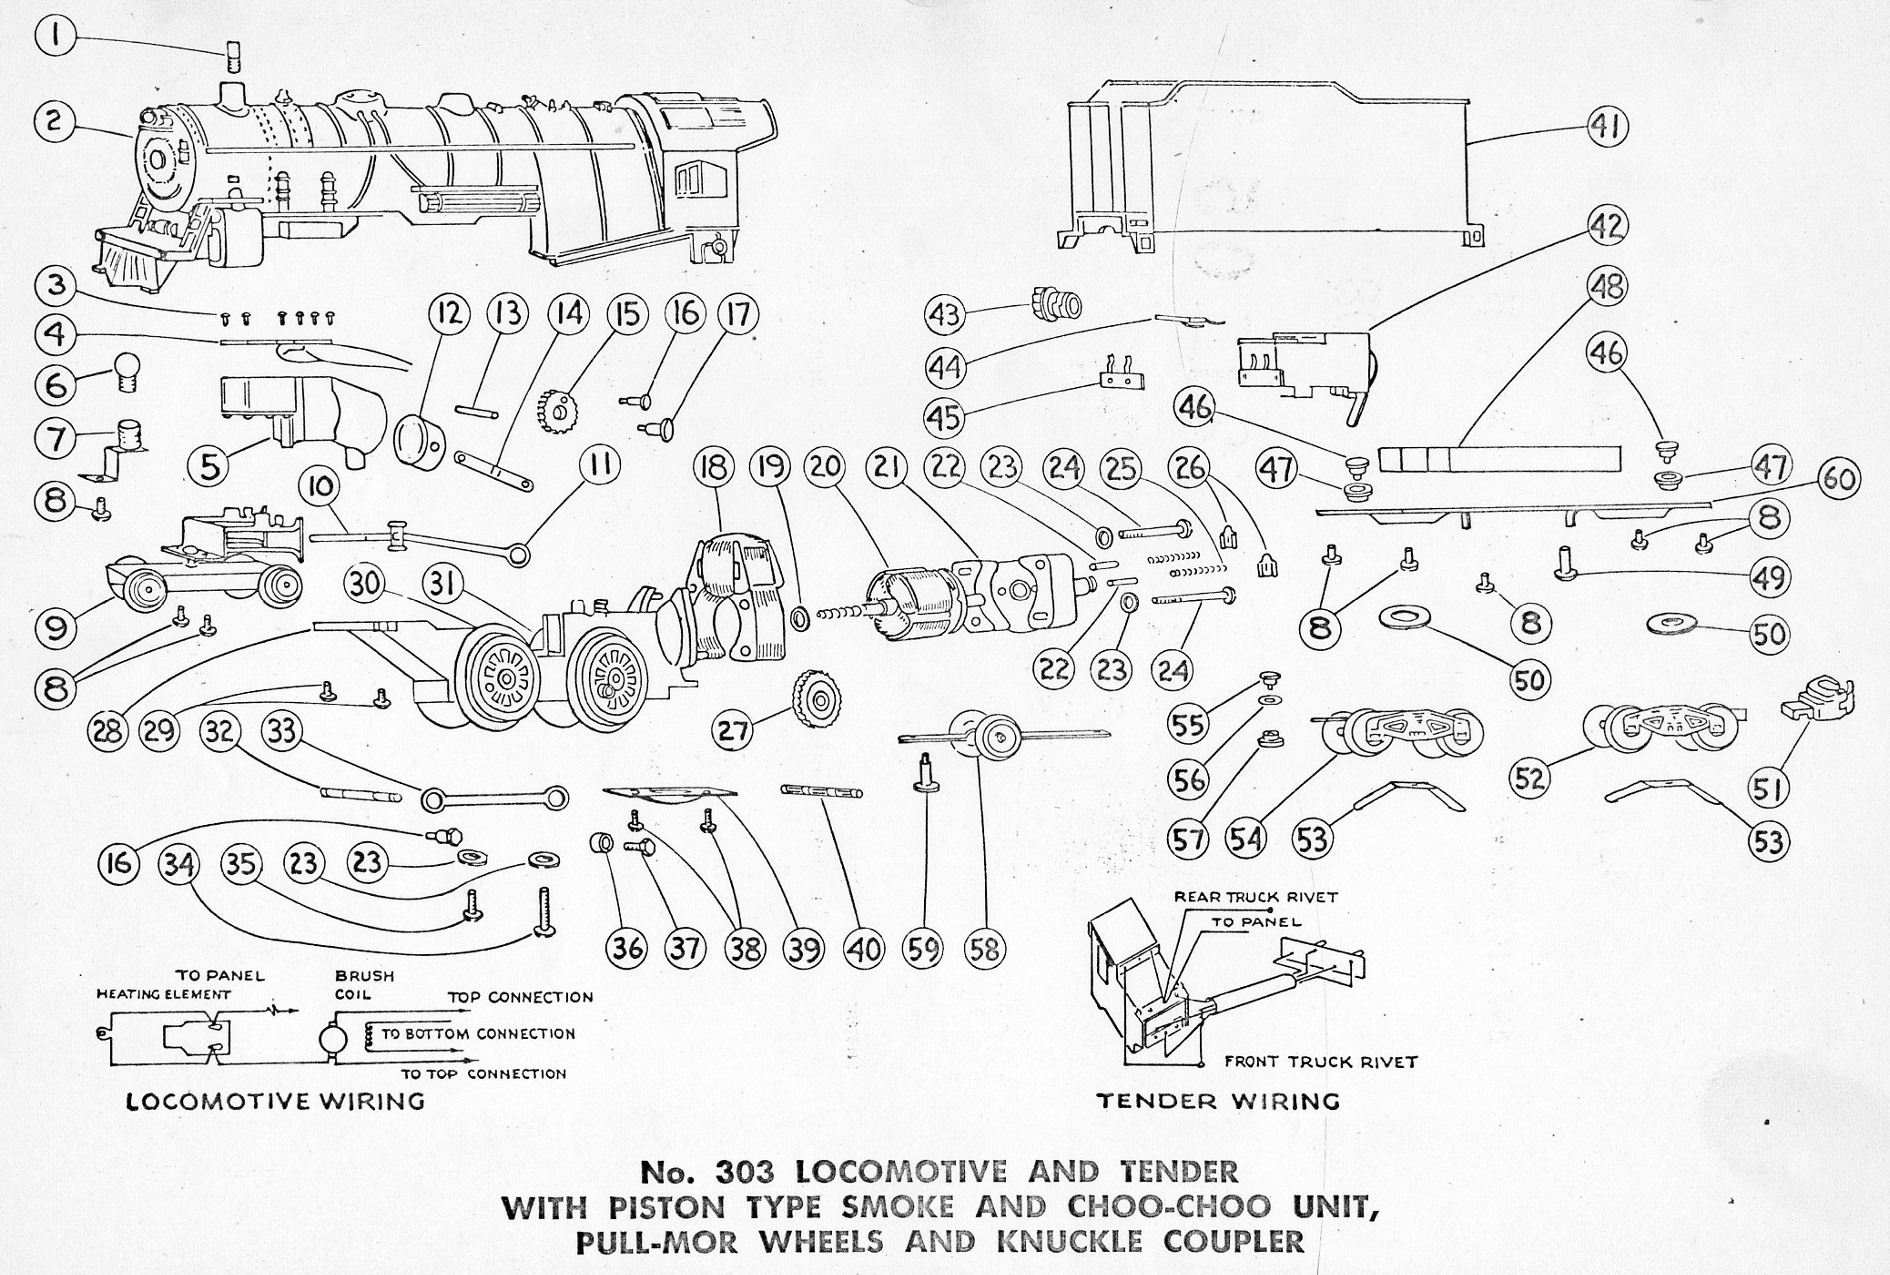 american flyer locomotive parts list and diagram traindr american flyer locomotive 303 parts list and diagram page 2